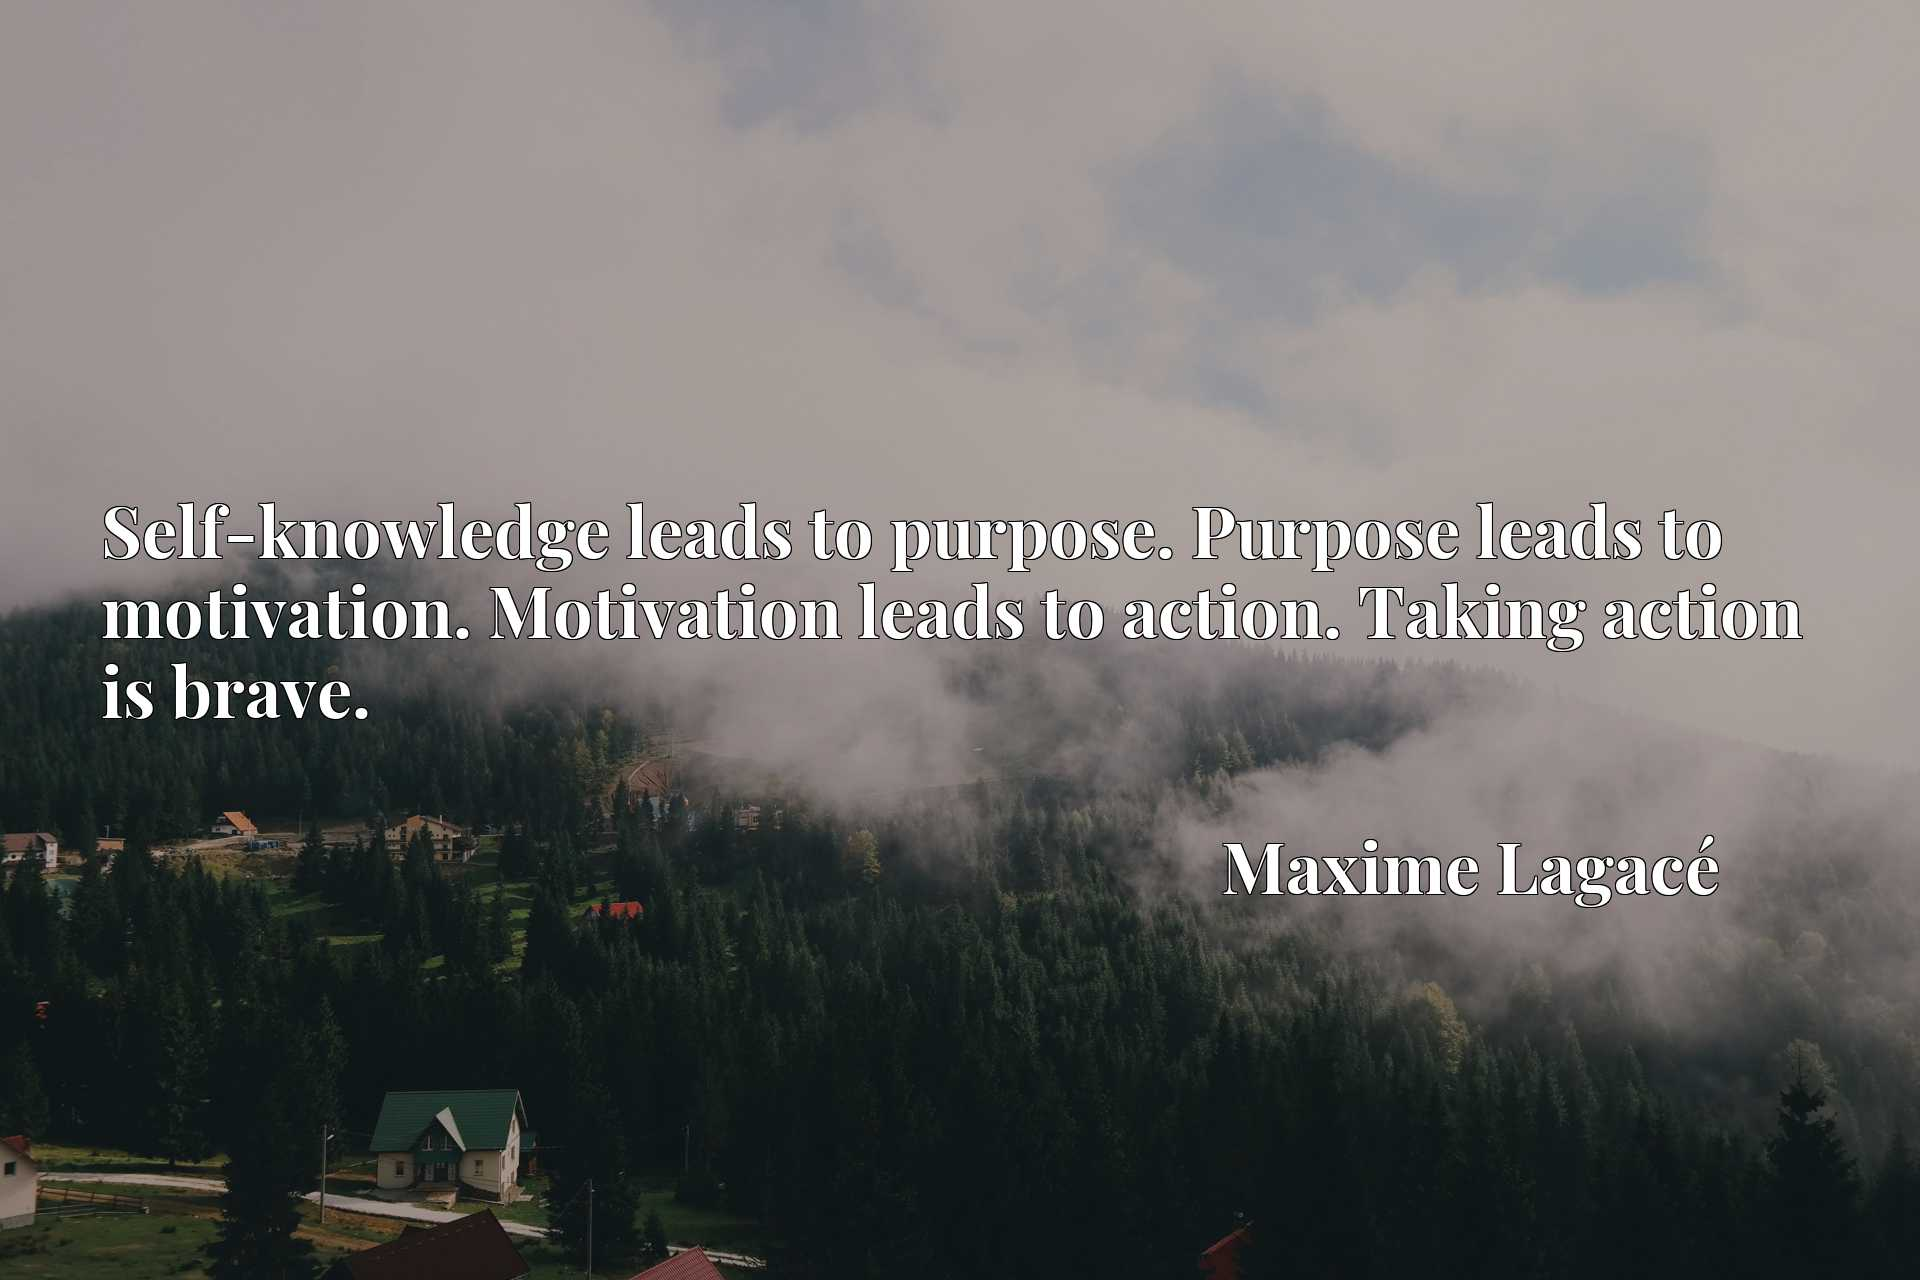 Self-knowledge leads to purpose. Purpose leads to motivation. Motivation leads to action. Taking action is brave.